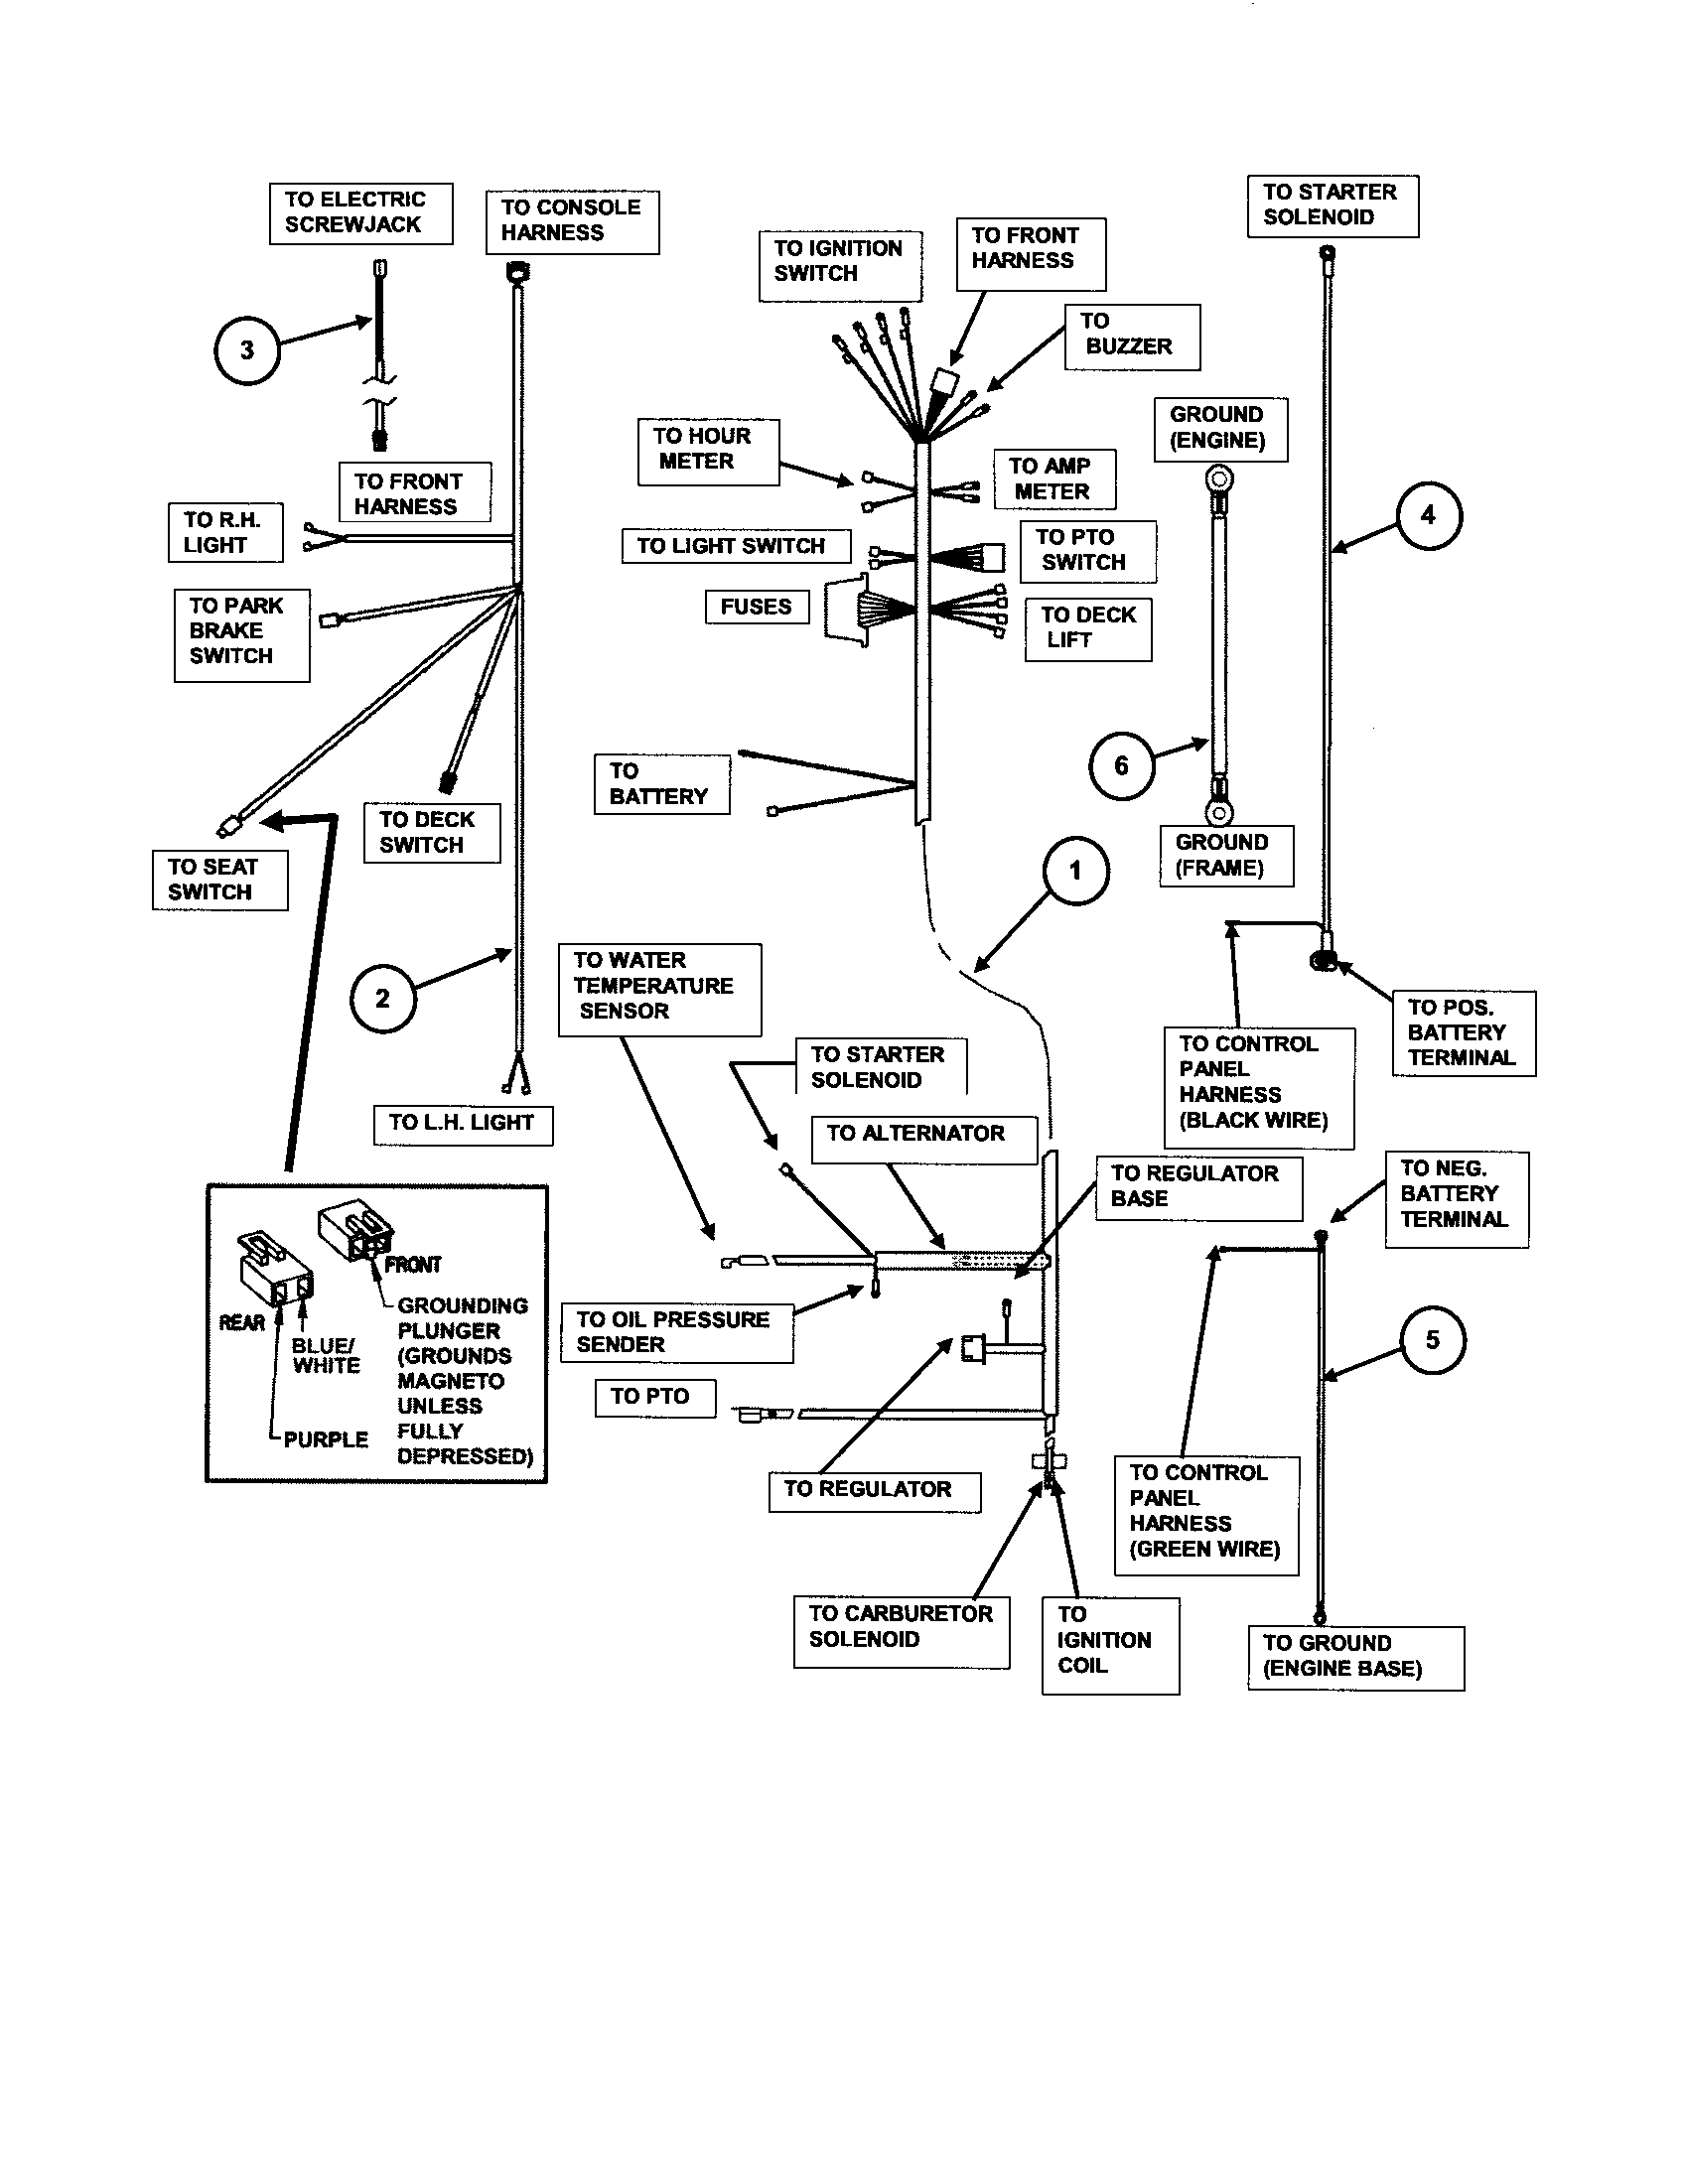 WIRING (GAS ONLY) Diagram & Parts List for Model ZF2300GKU